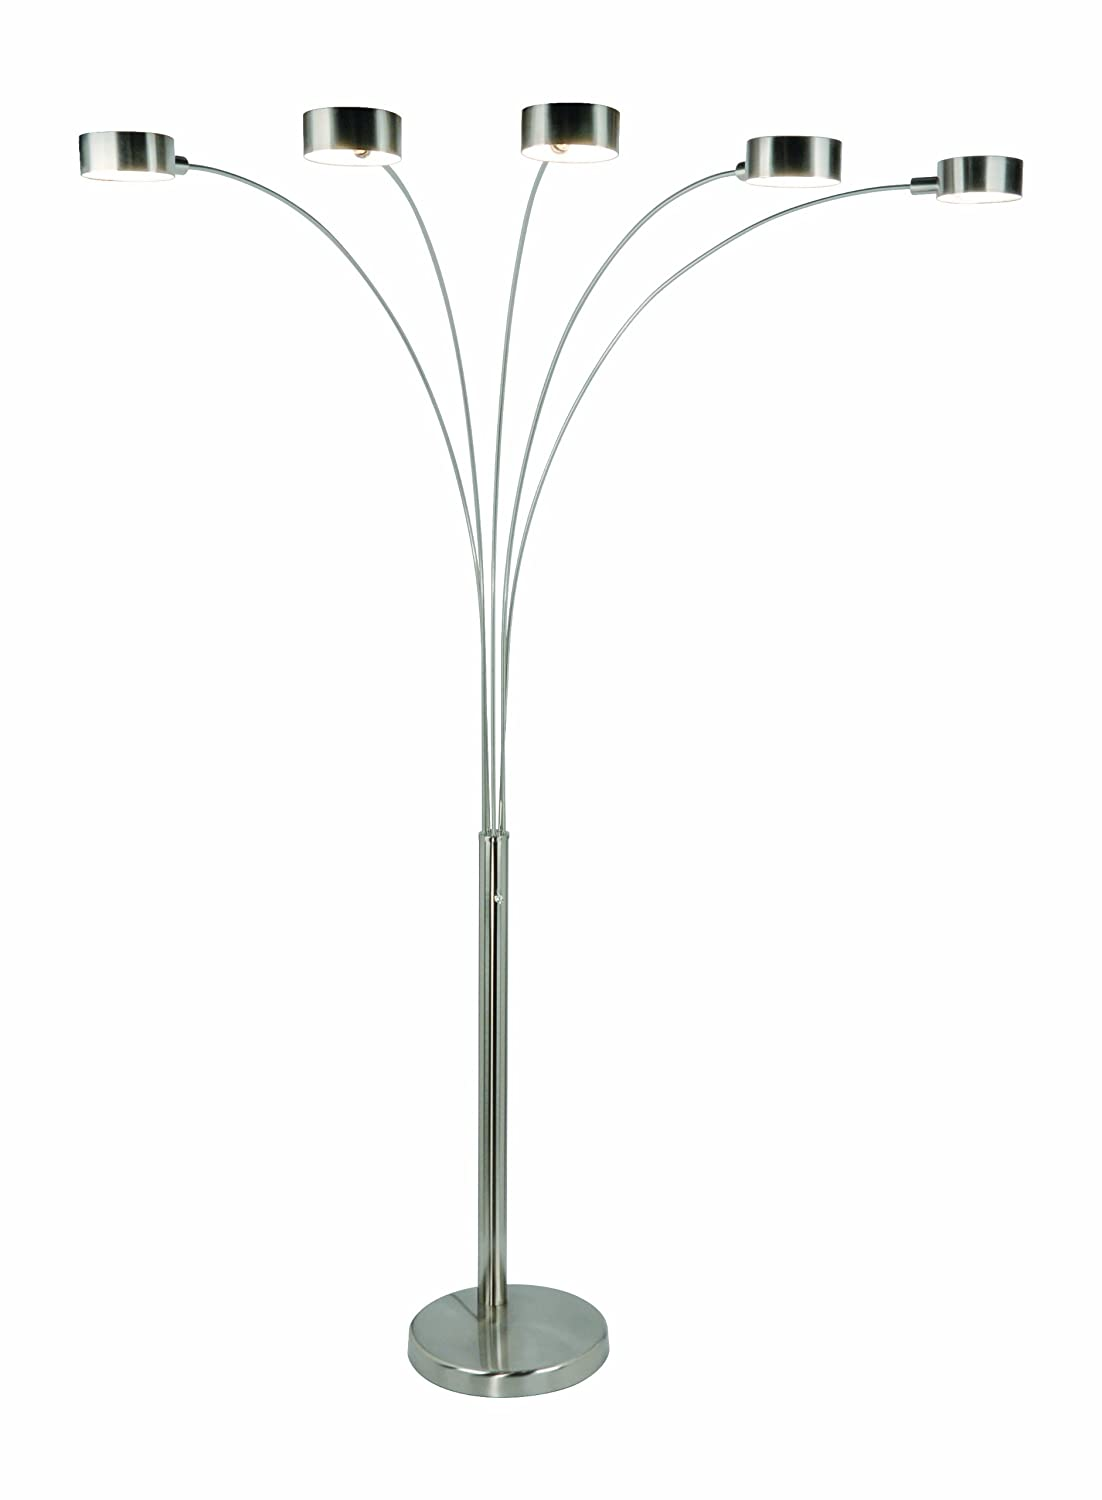 amazoncom artiva usa micah modern u0026 stylish 5 arc brushed steel floor lamp w dimmer switch 360 degree rotatable shades dim options bright